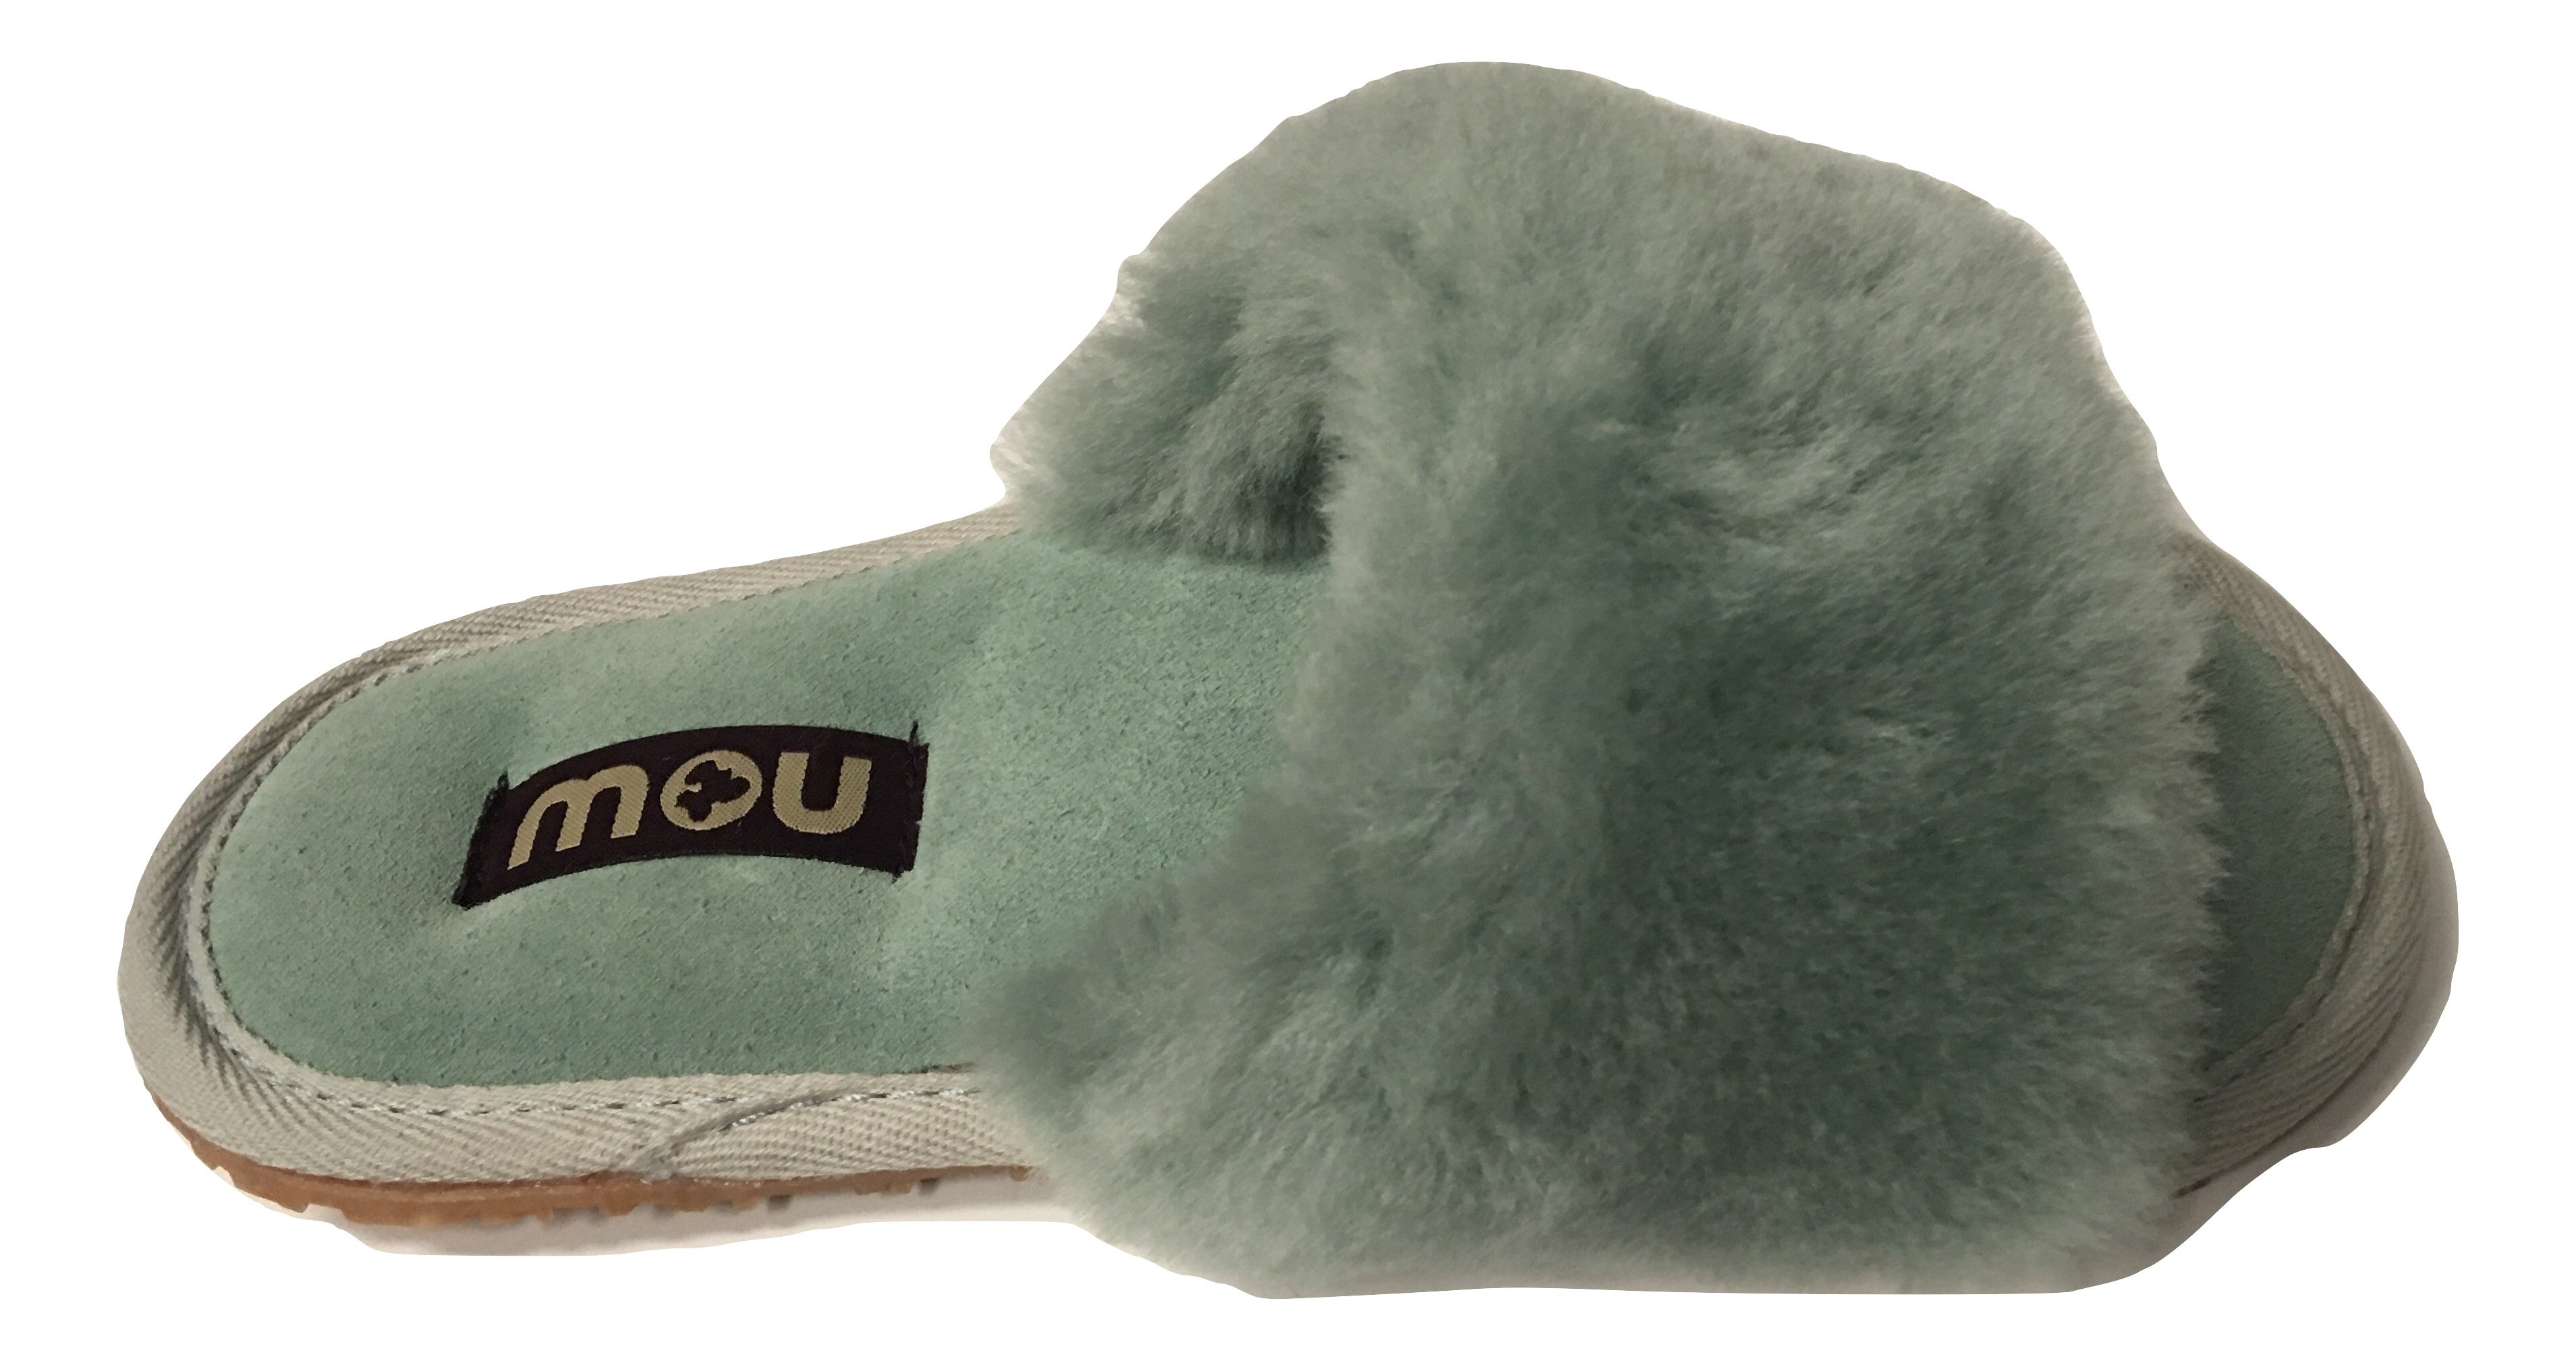 Mou Sheepskin Slides - Mint